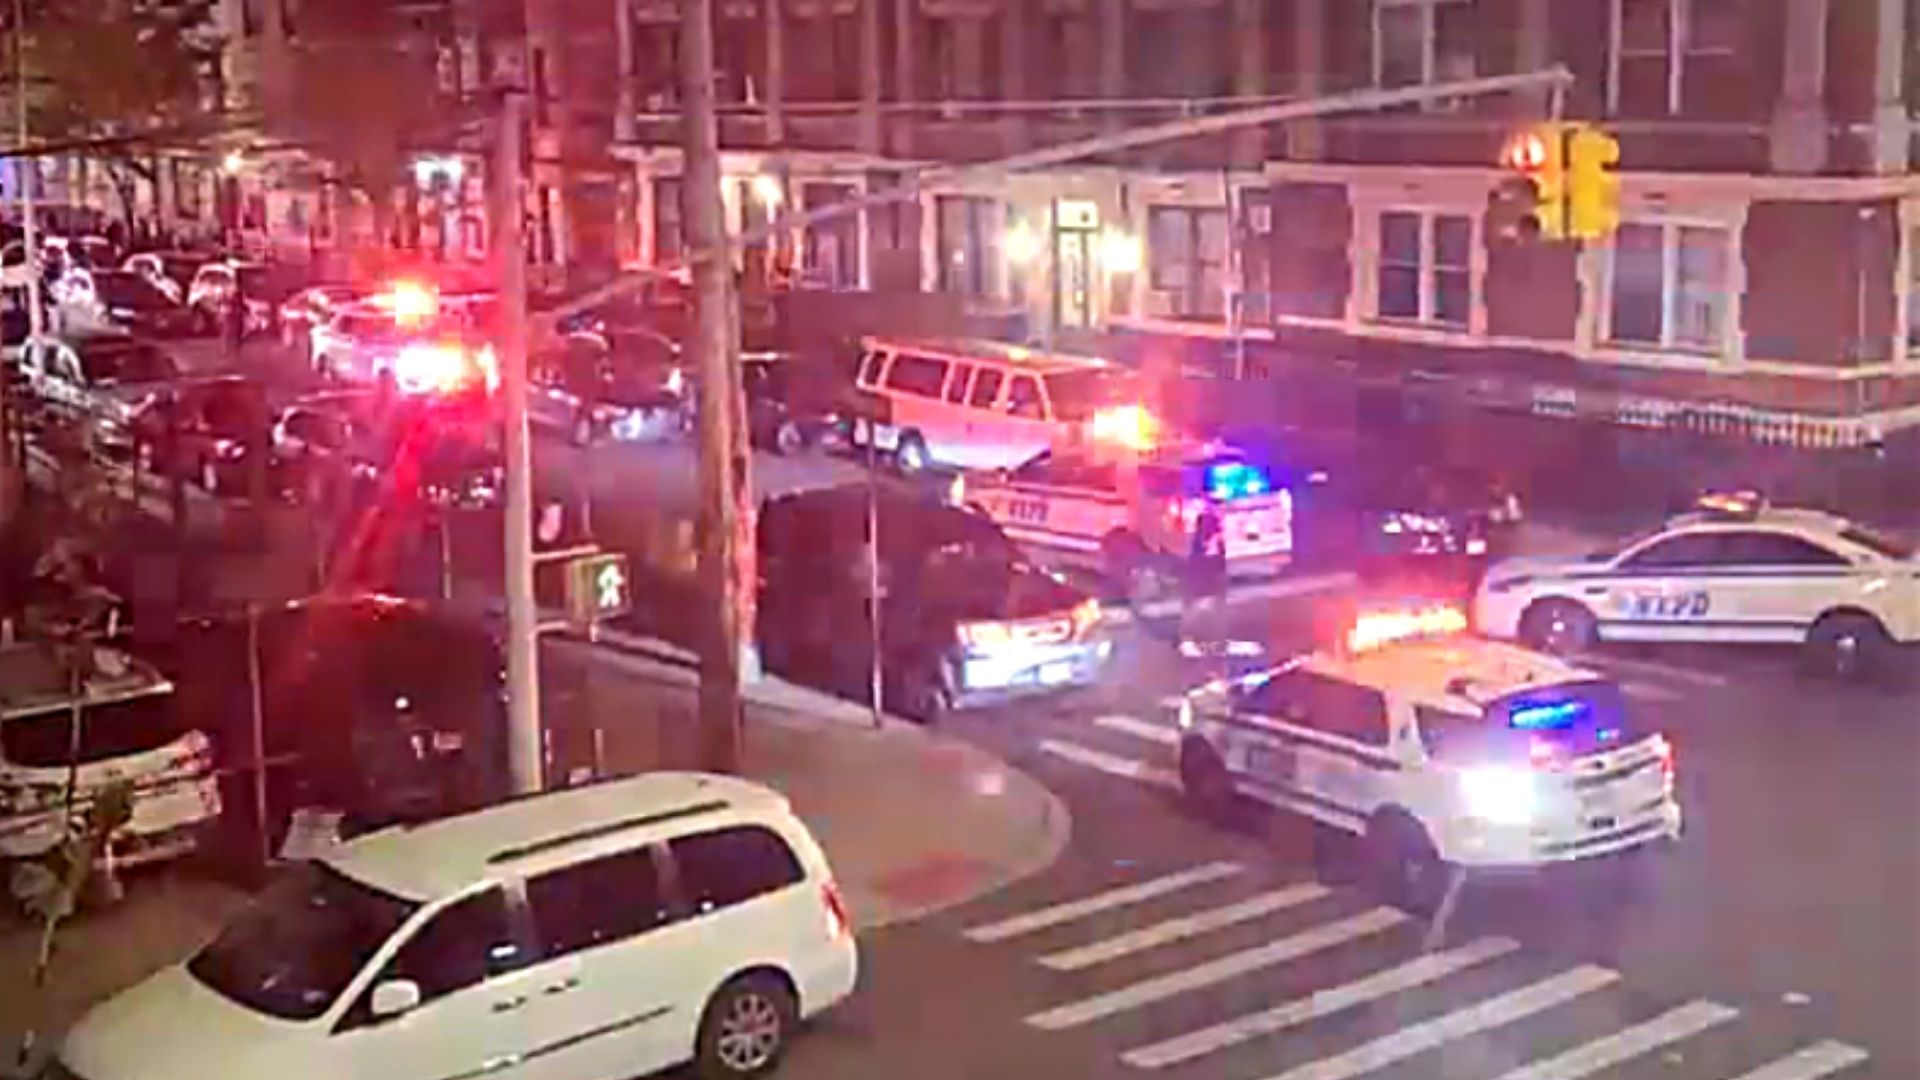 Police on the scene after an 18-year-old was shot in the ankle in the Bronx late Monday night, April 26, 2021, according to the NYPD.